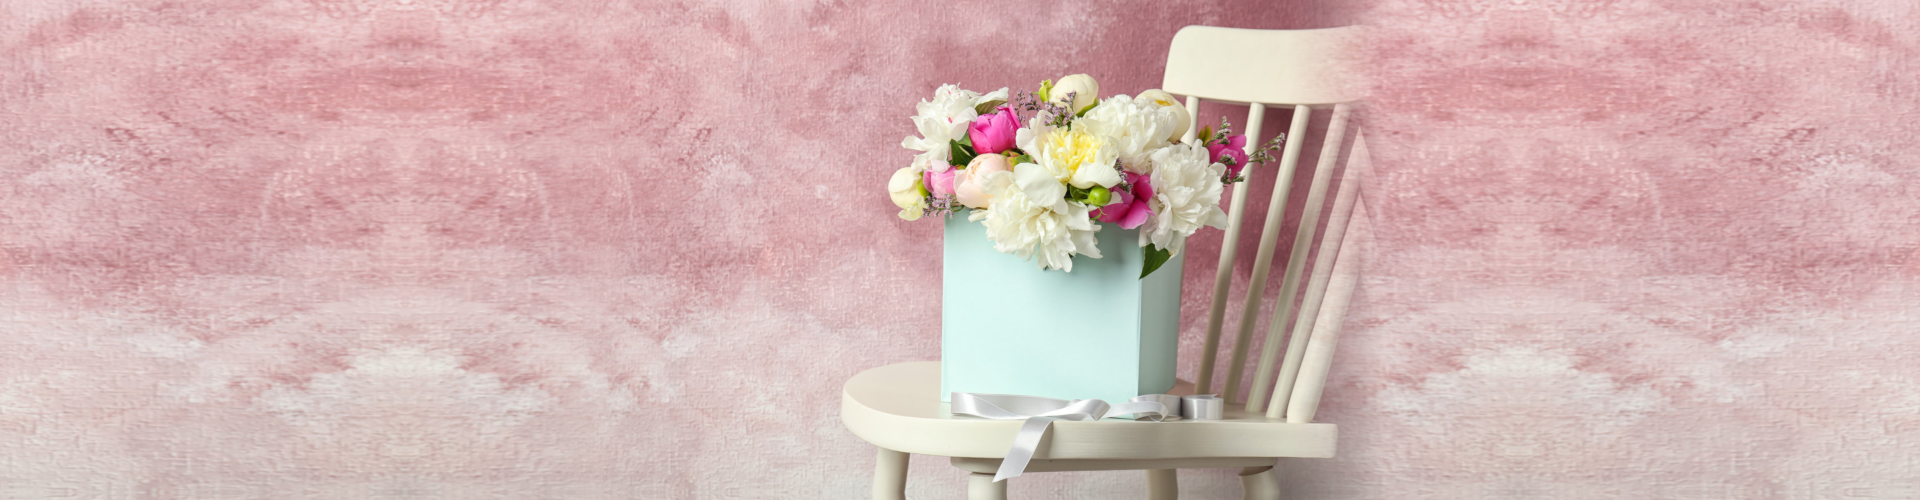 Box with beautiful flowers on wooden chair against color background